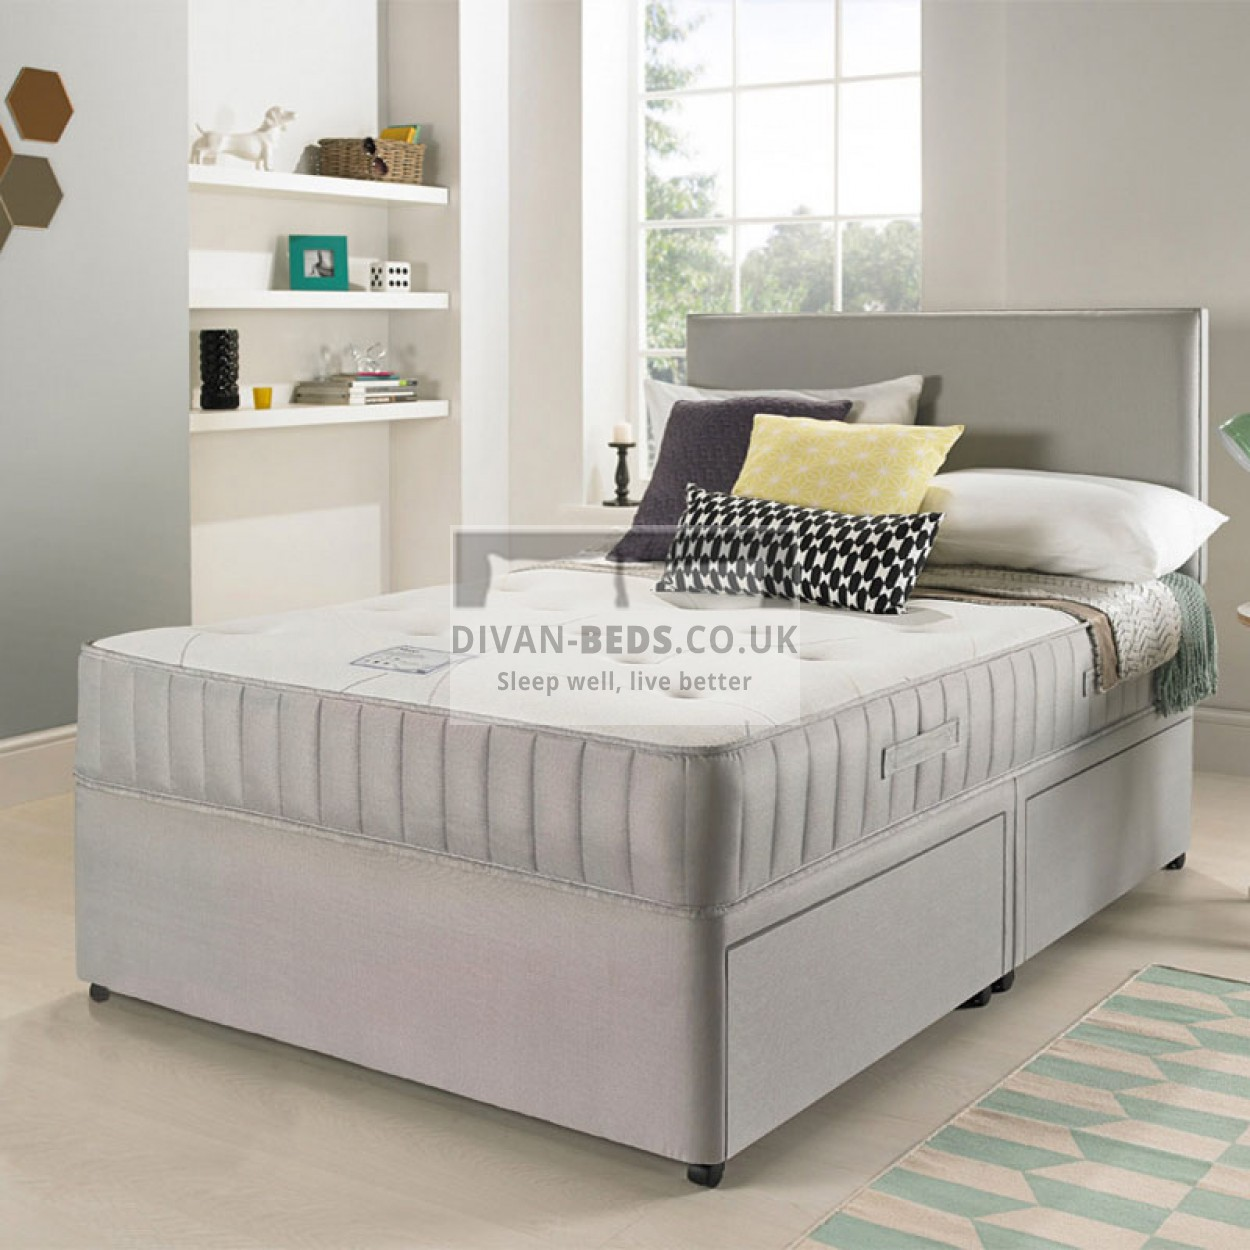 Egerton Divan Bed With Spring Memory Foam Mattress And Suede Headboard Guaranteed Cheapest